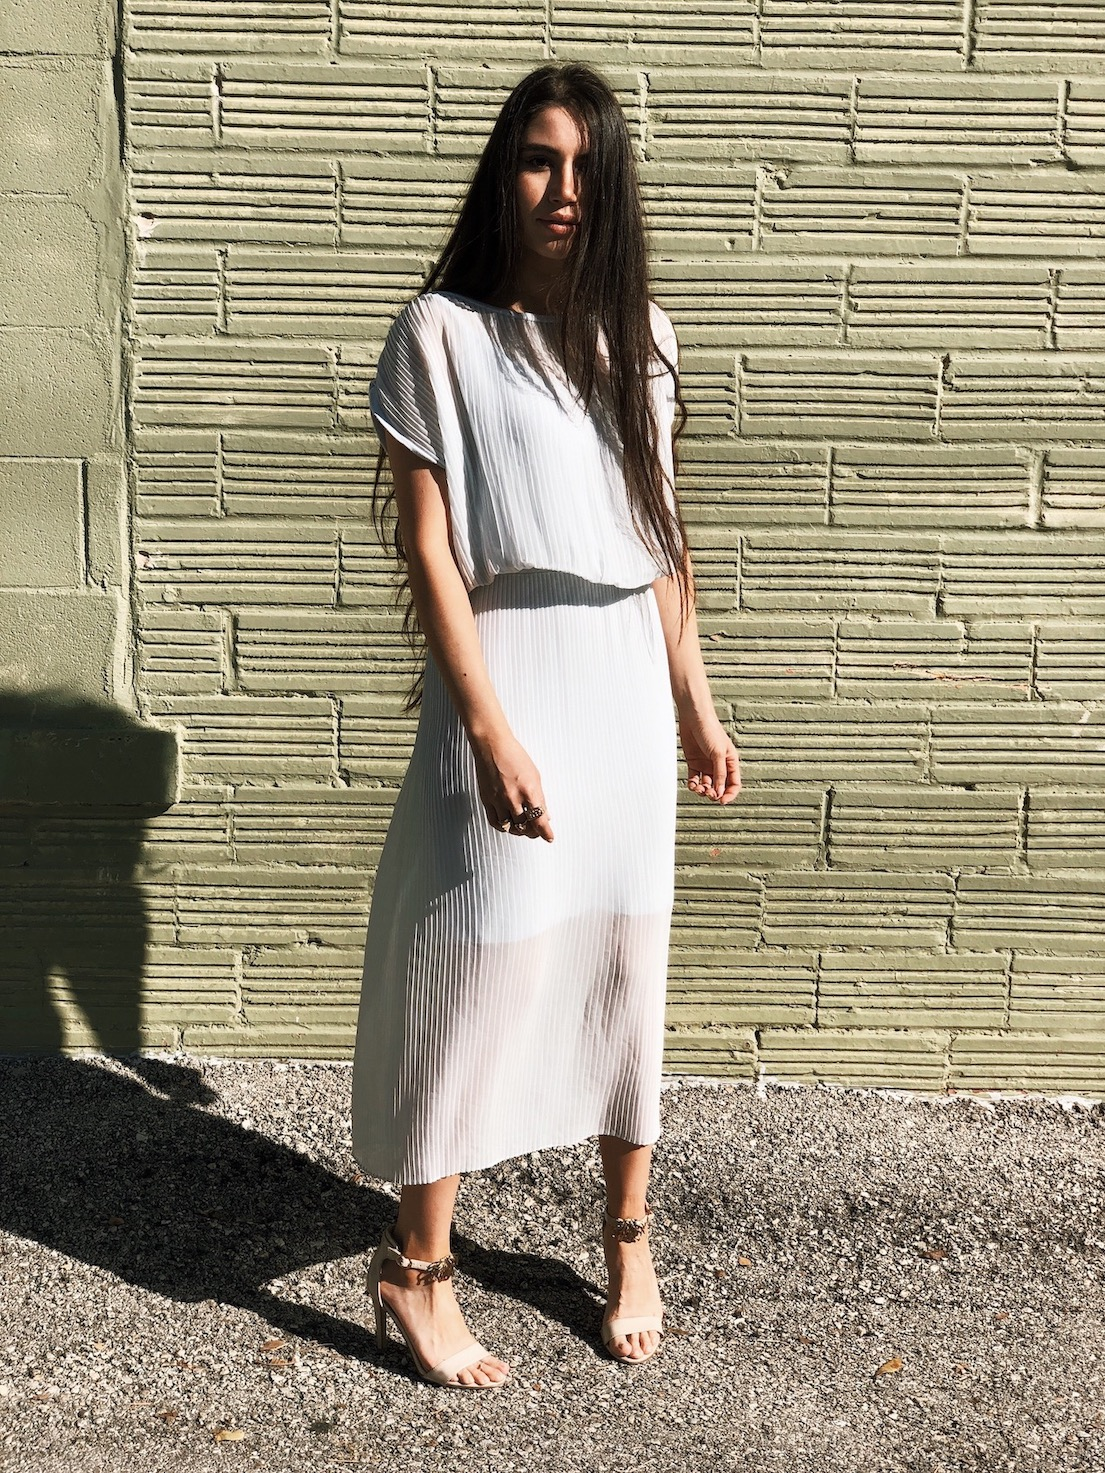 Thrifted dress - A Week Of Cruelty-Free Outfits & Vegan Beauty With Jessica Salazar From All There August on The Good Trade